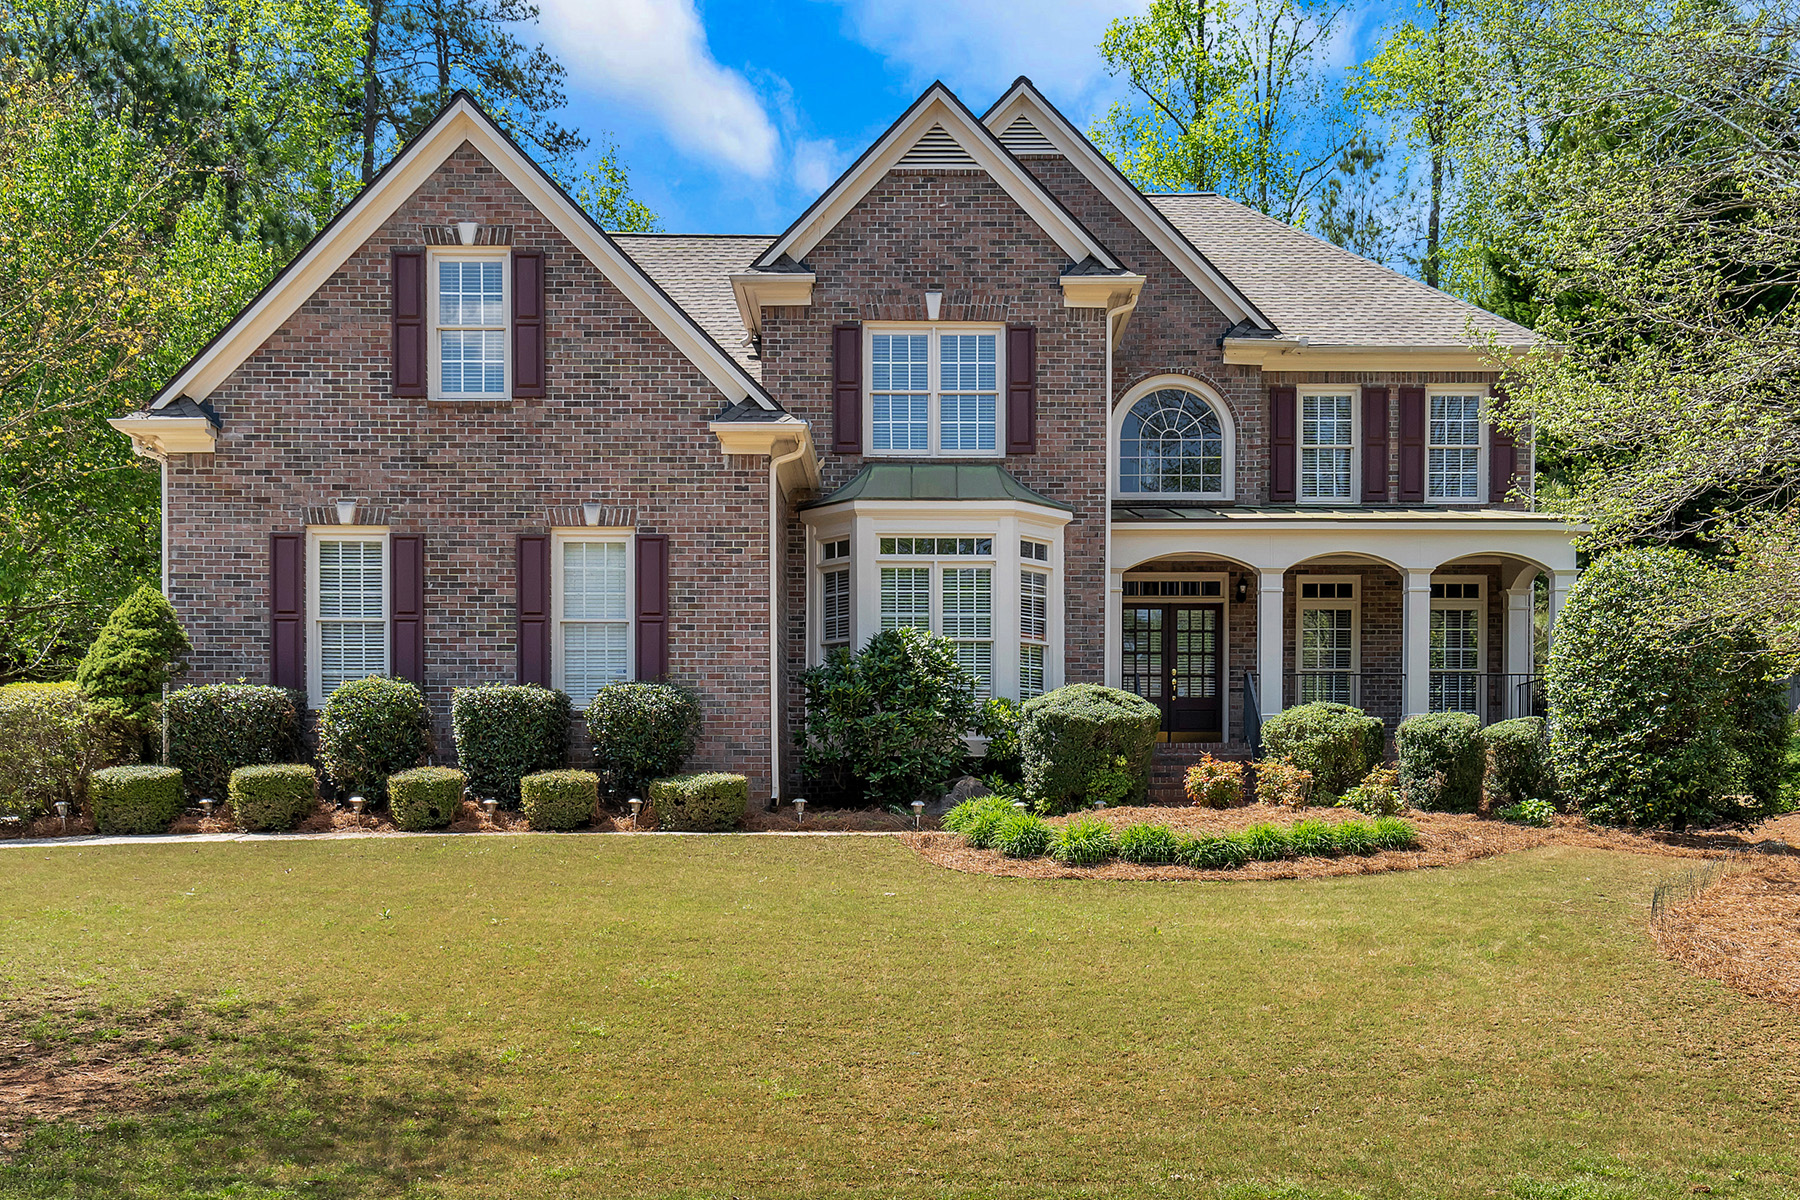 Single Family Homes for Active at Vinings Estates Gem 754 Vinings Estates Dr Mableton, Georgia 30126 United States